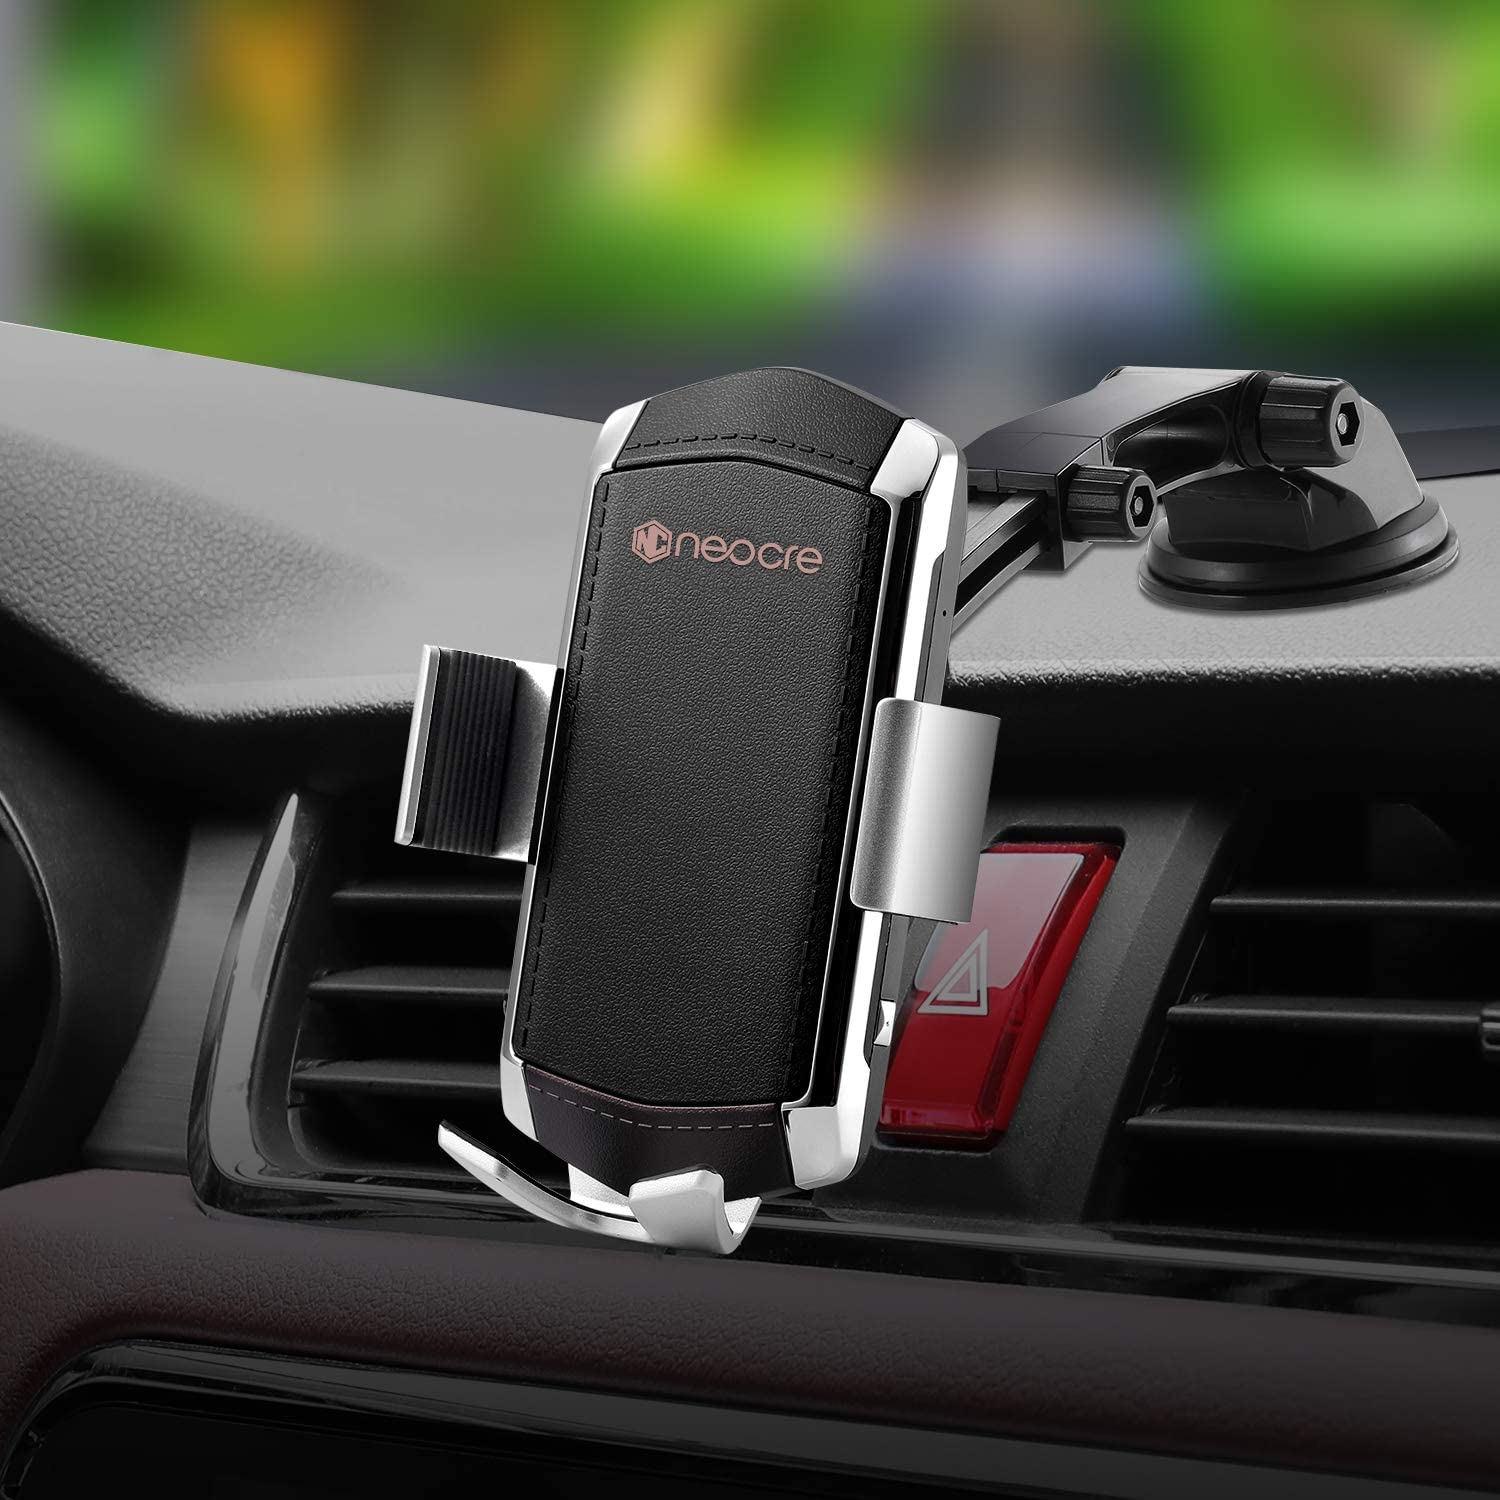 Wireless Car Charger Mount with QC 3.0 Car Adapter,10W Qi Fast Charging,Auto Clamping Windshield Dash Air Vent Touch Sensing Automatic Retractable Clip Holder Compatible with iPhone 11/11 Pro Max/XS/X